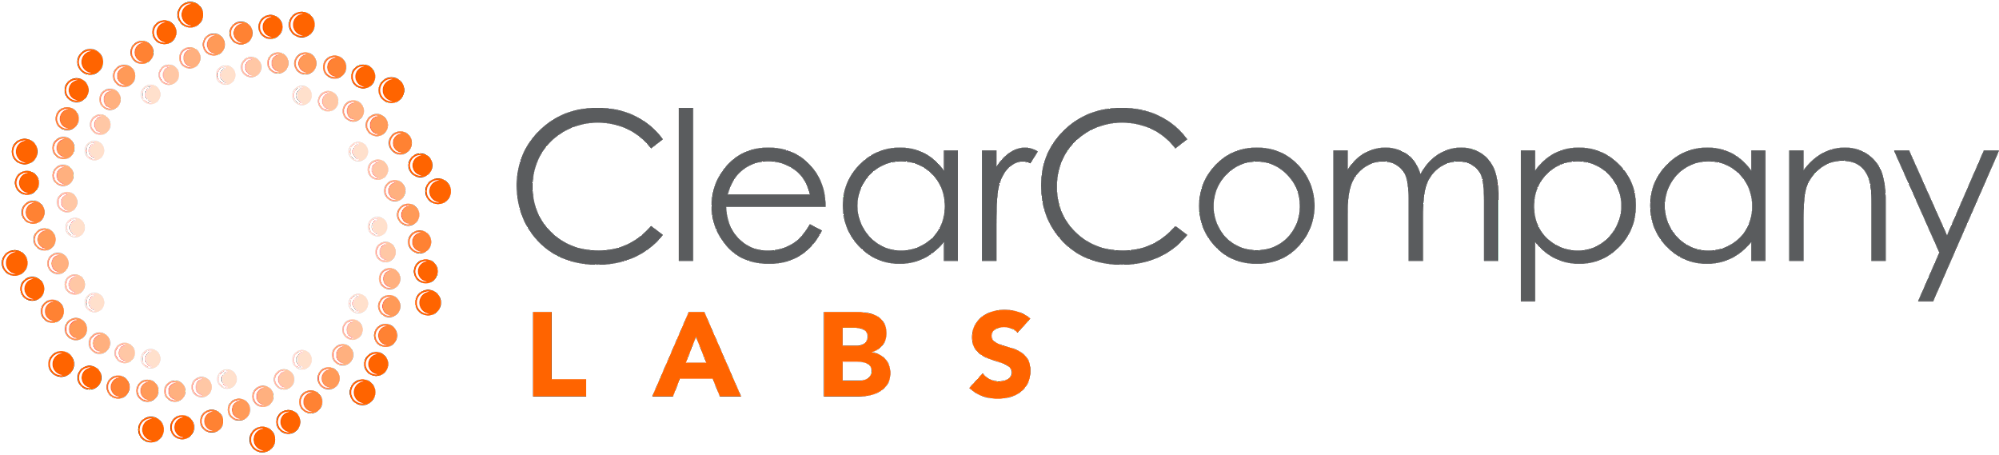 ClearCompany Labs logo